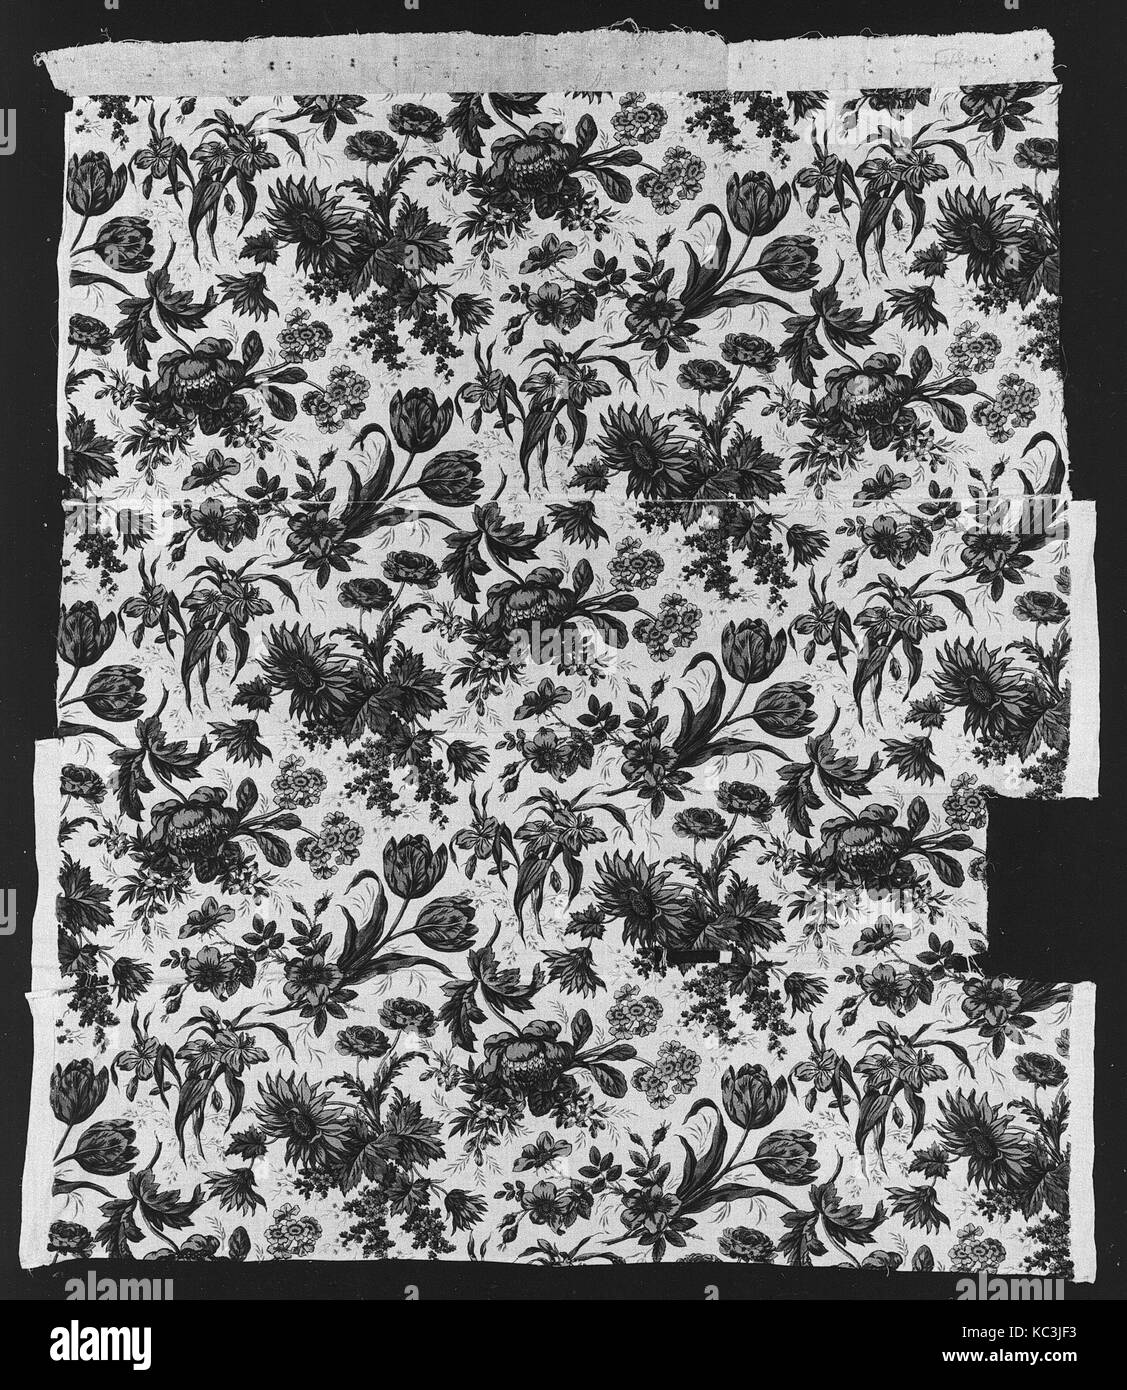 Panel, ca. 1820s, British, Cotton, L. 38 1/4 x W. 35 inches (loom), Textiles-Printed - Stock Image